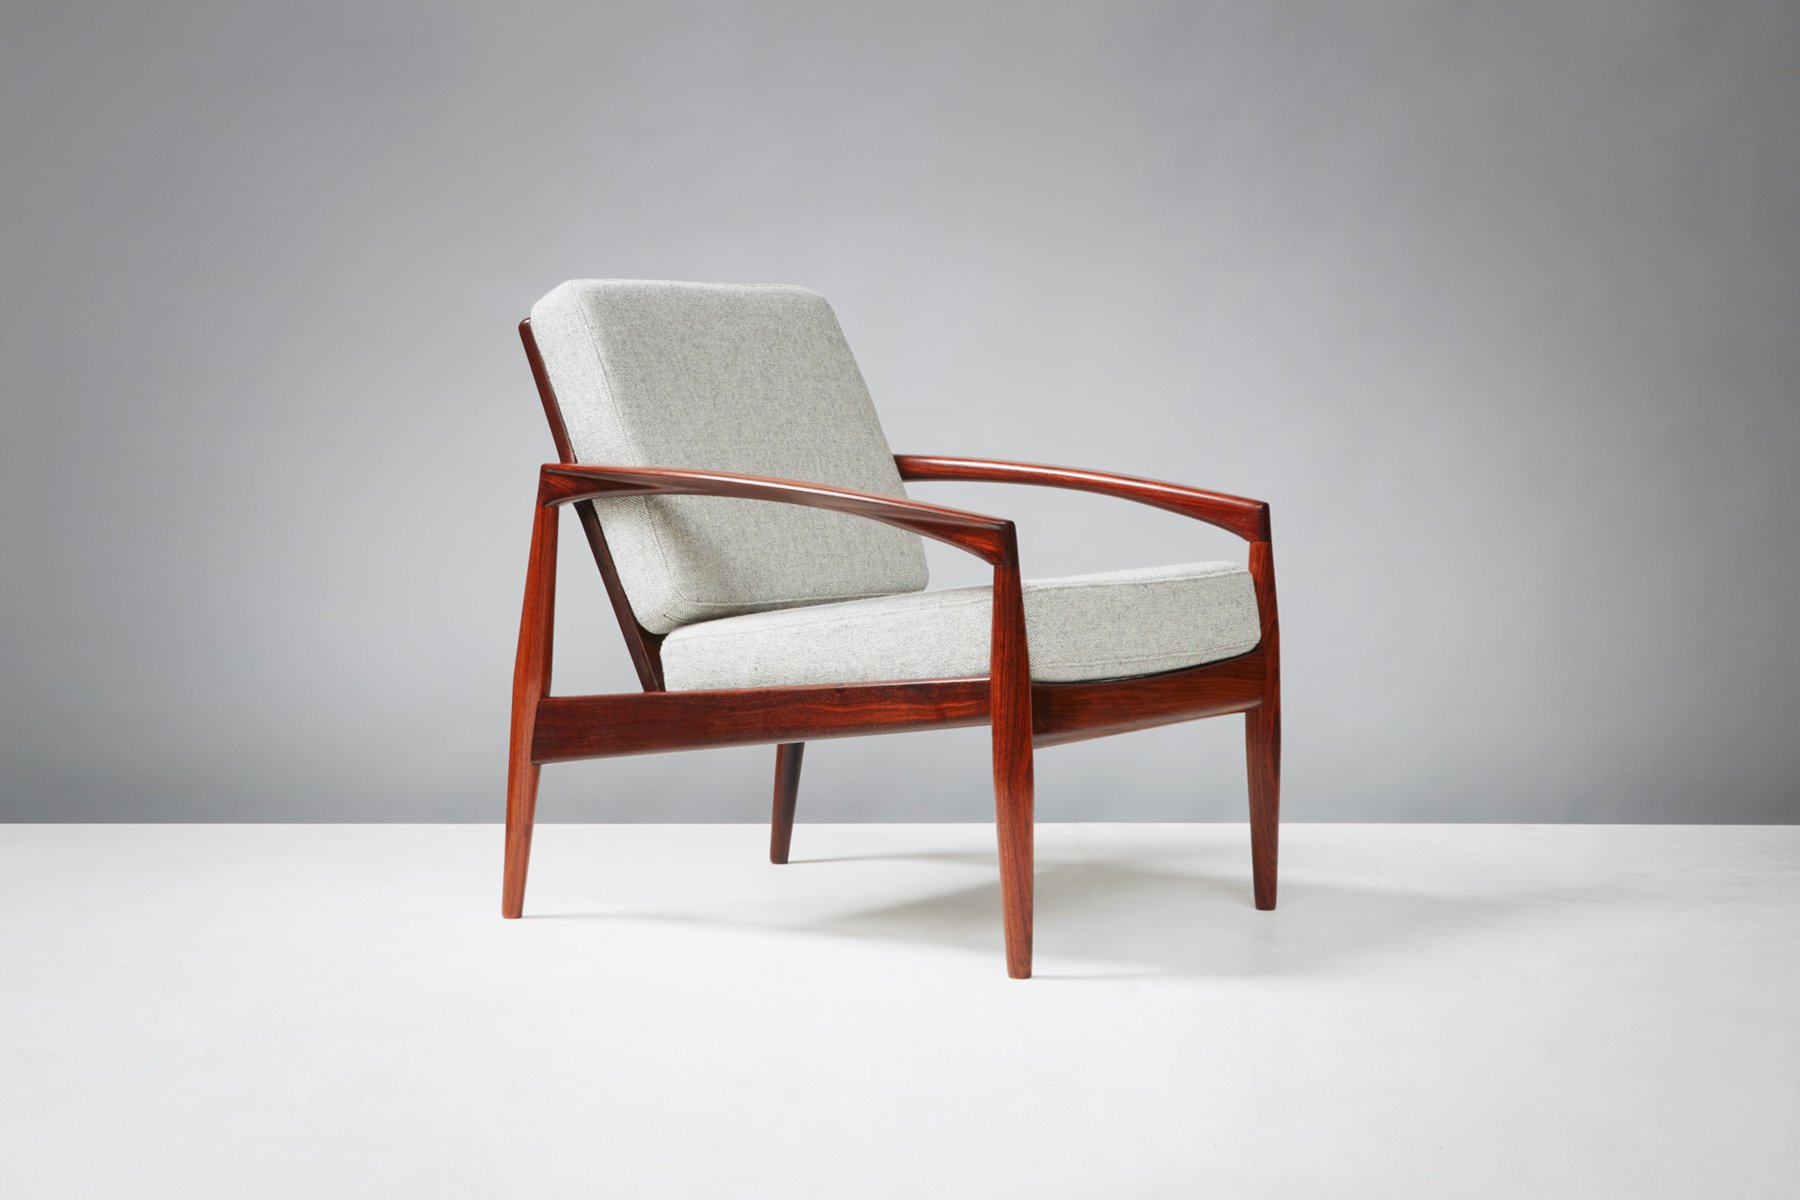 Rosewood paper knife chair by kai kristiansen for magnus oleson 1950s for sale at pamono - Kai kristiansen chair ...